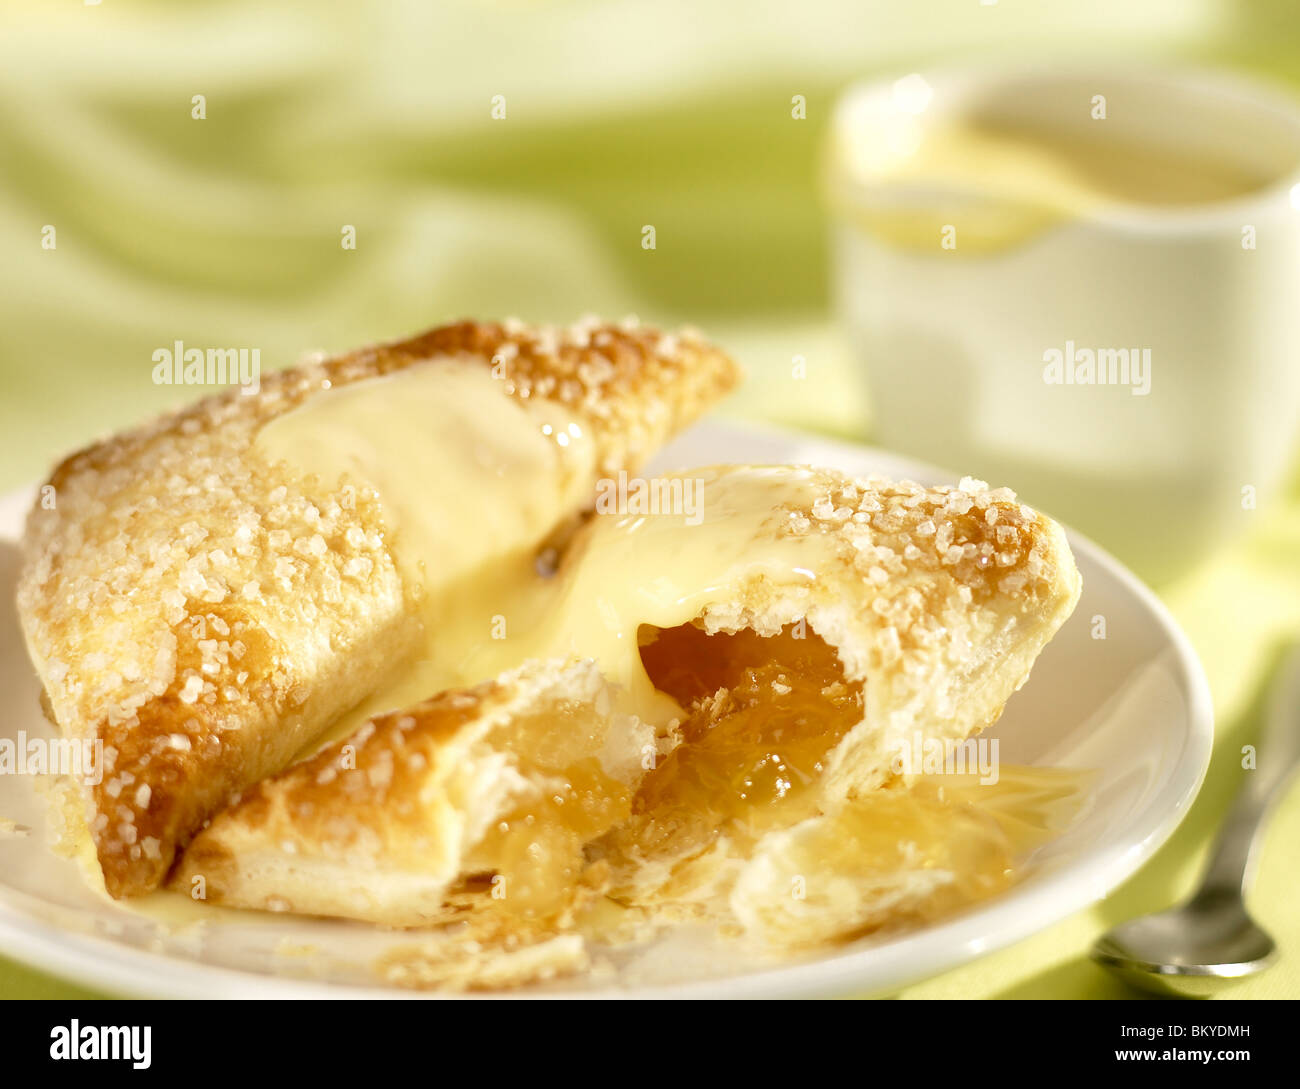 Apple turnover with custard - Stock Image